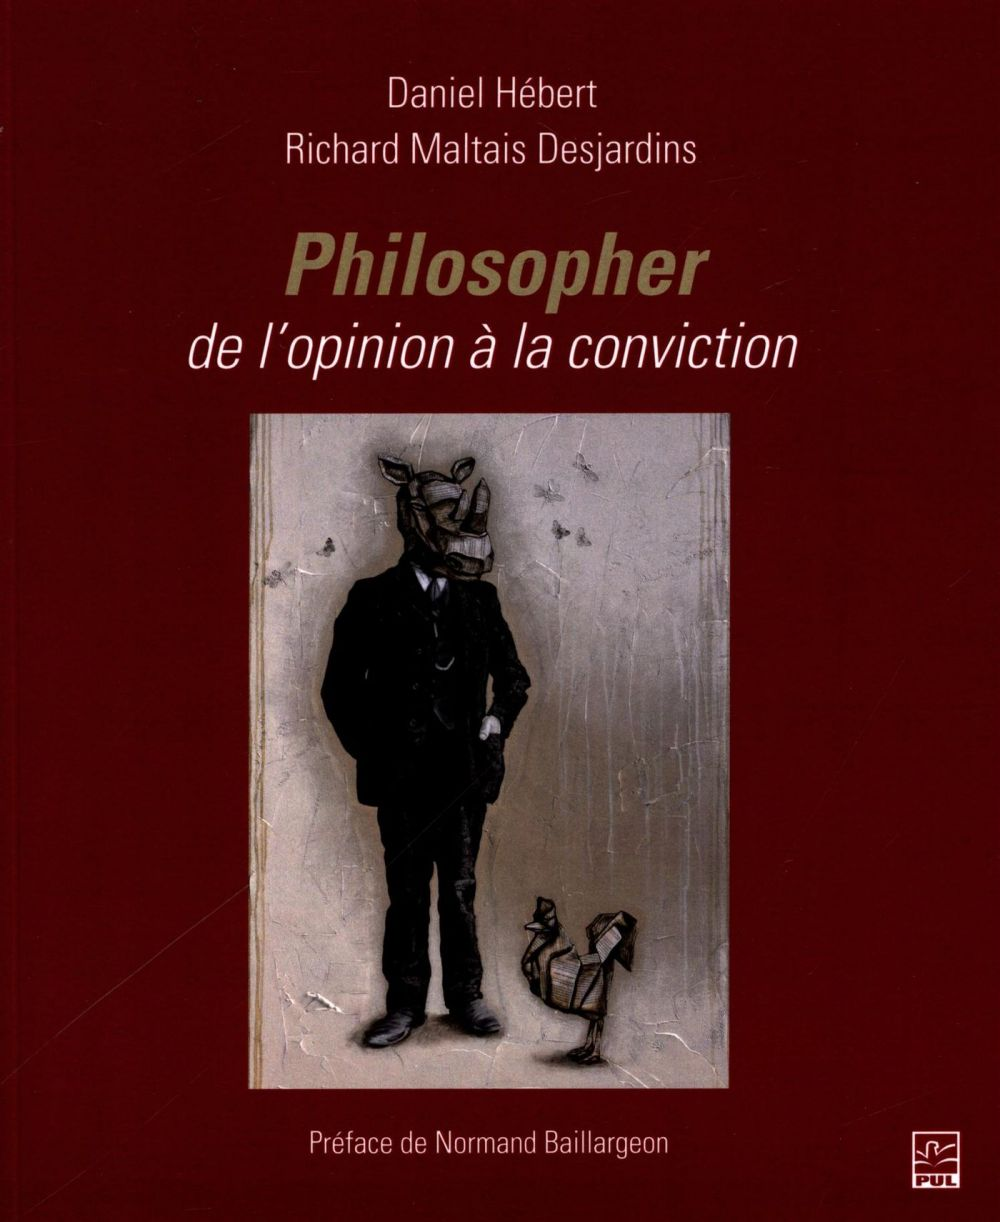 Philosopher, de l'opinion à la conviction